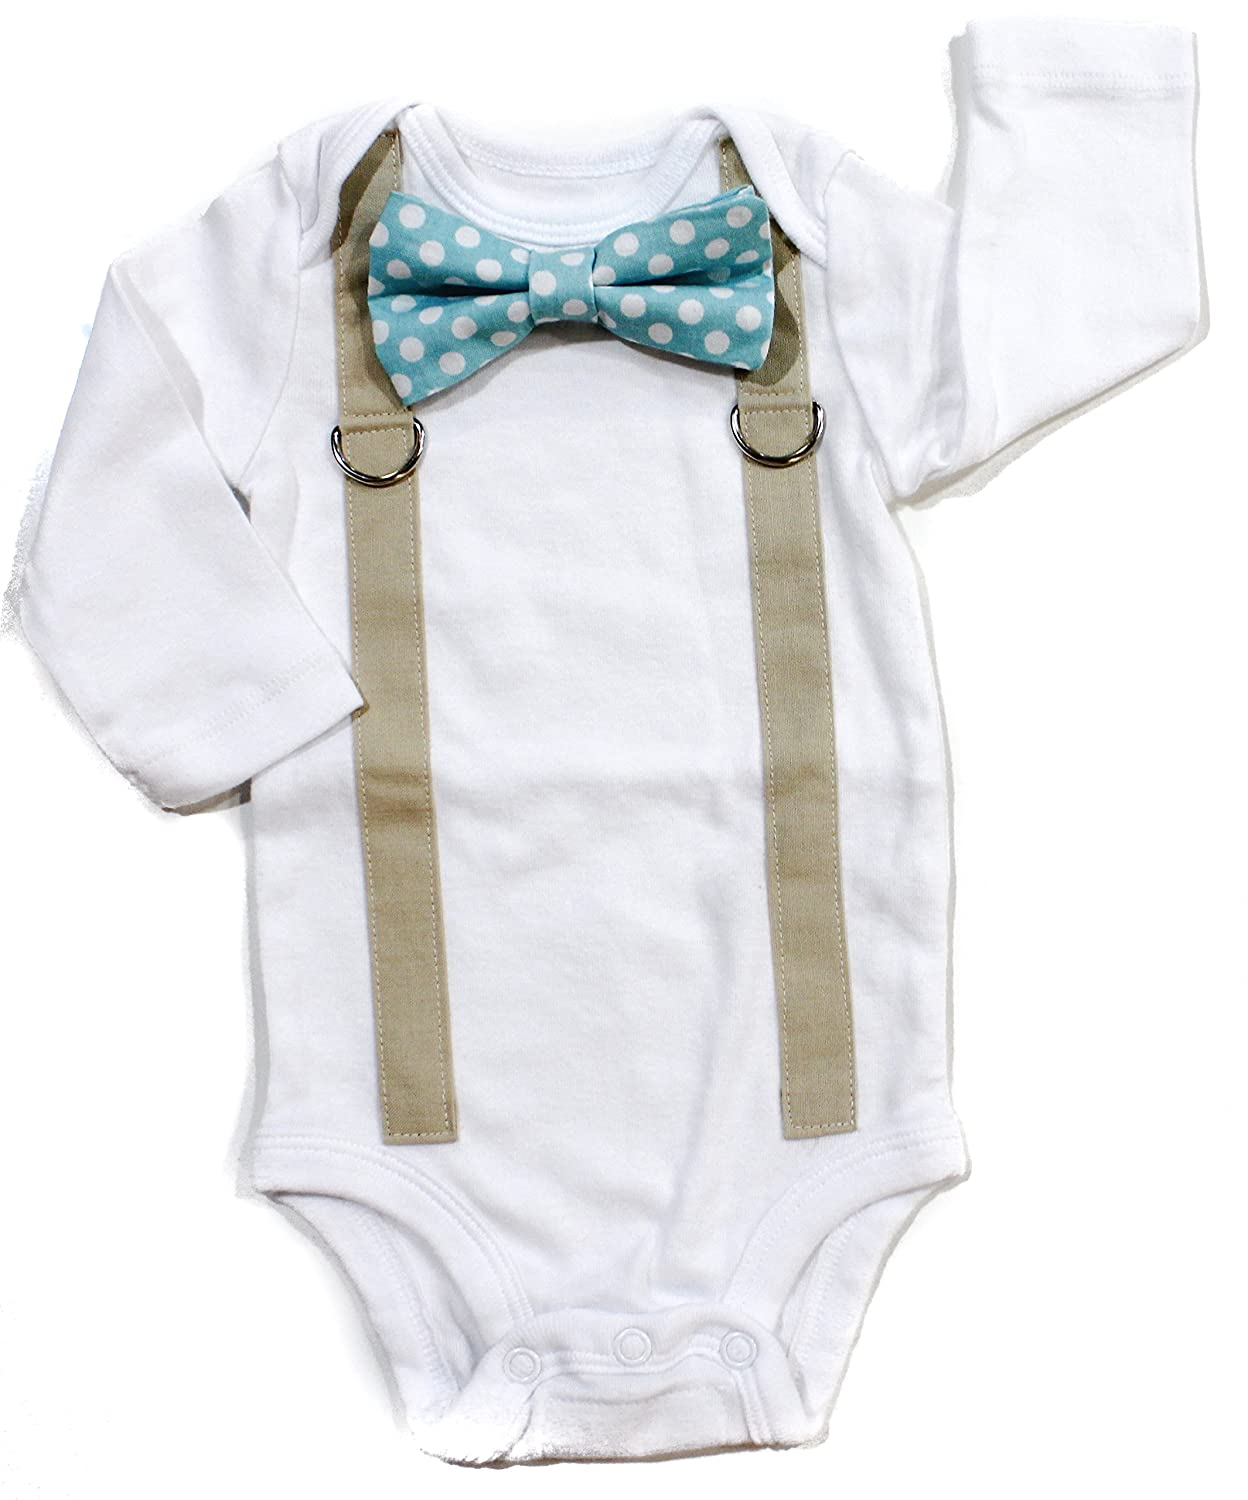 932b11ee4 Amazon.com: Cuddle Sleep Dream Baby Boy Coming Home Outfit with Bow Tie and  Suspenders in Aqua: Clothing